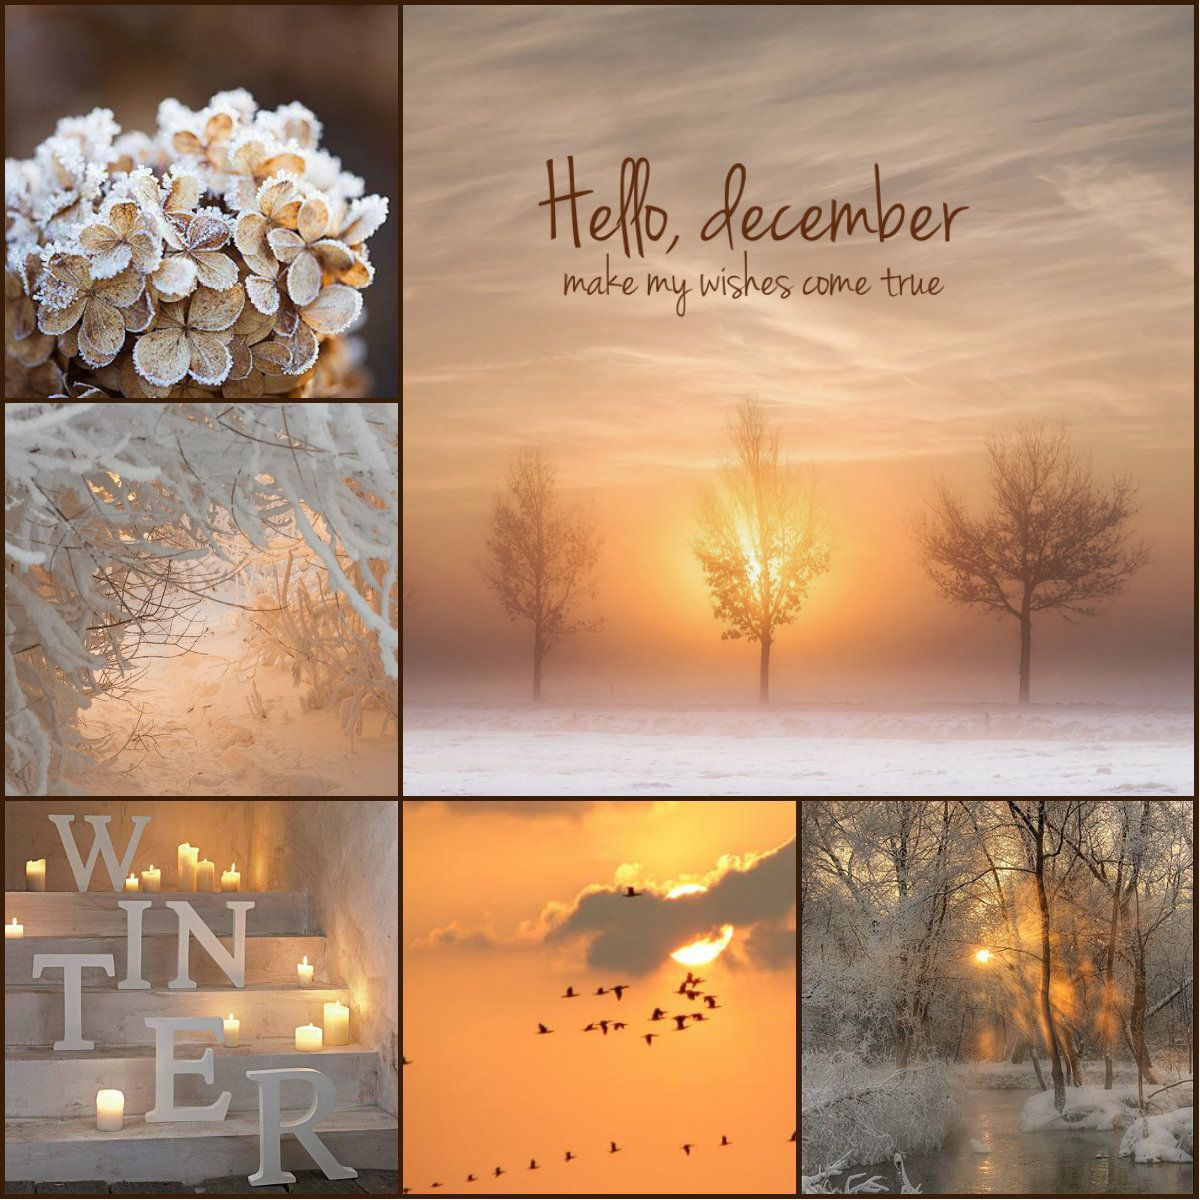 december, make my wishes come true | Christmas LoveHello December Make My Wishes Come True